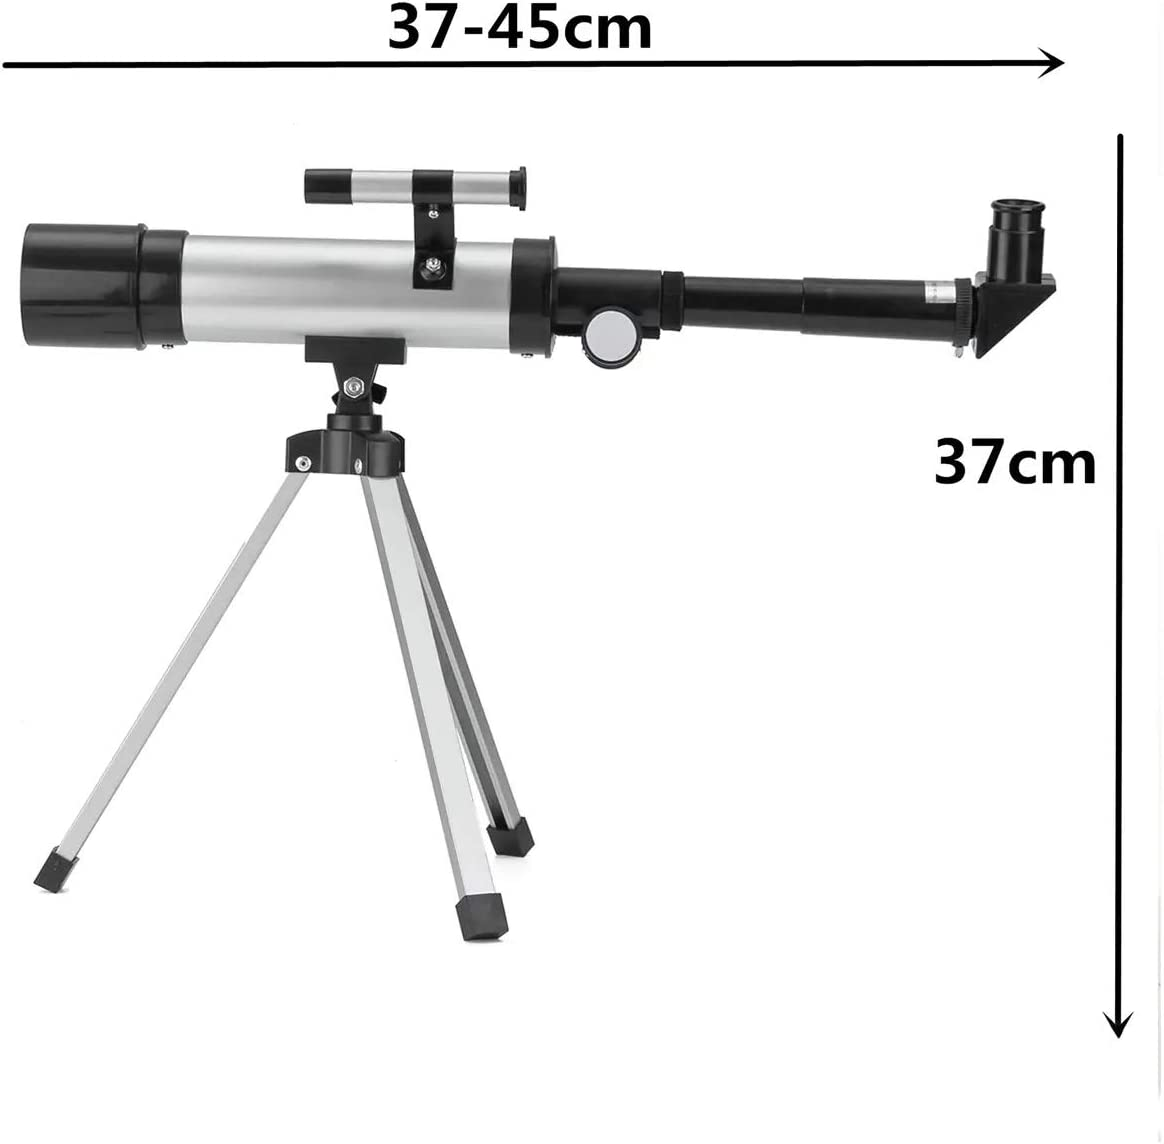 MDYYD Telescope 360x50mm Astronomical Telescope Refractor Monocular Spotting Scope with Tripod Refracting Telescope Color : Silver, Size : 39.5x21.5x8.5cm